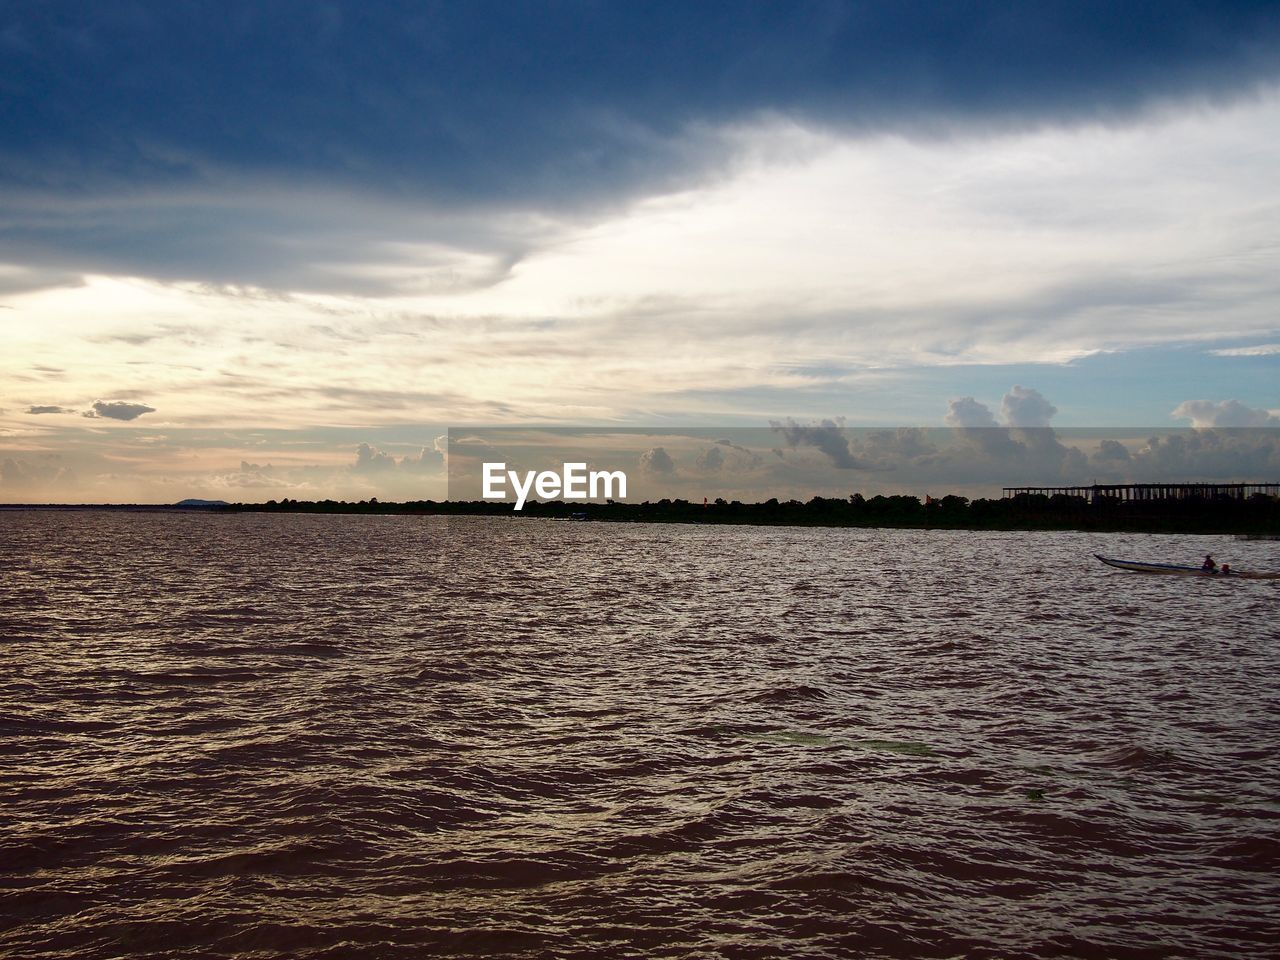 water, sky, cloud - sky, waterfront, scenics - nature, tranquil scene, tranquility, beauty in nature, sea, no people, nature, rippled, sunset, idyllic, non-urban scene, outdoors, environment, land, dusk, view into land